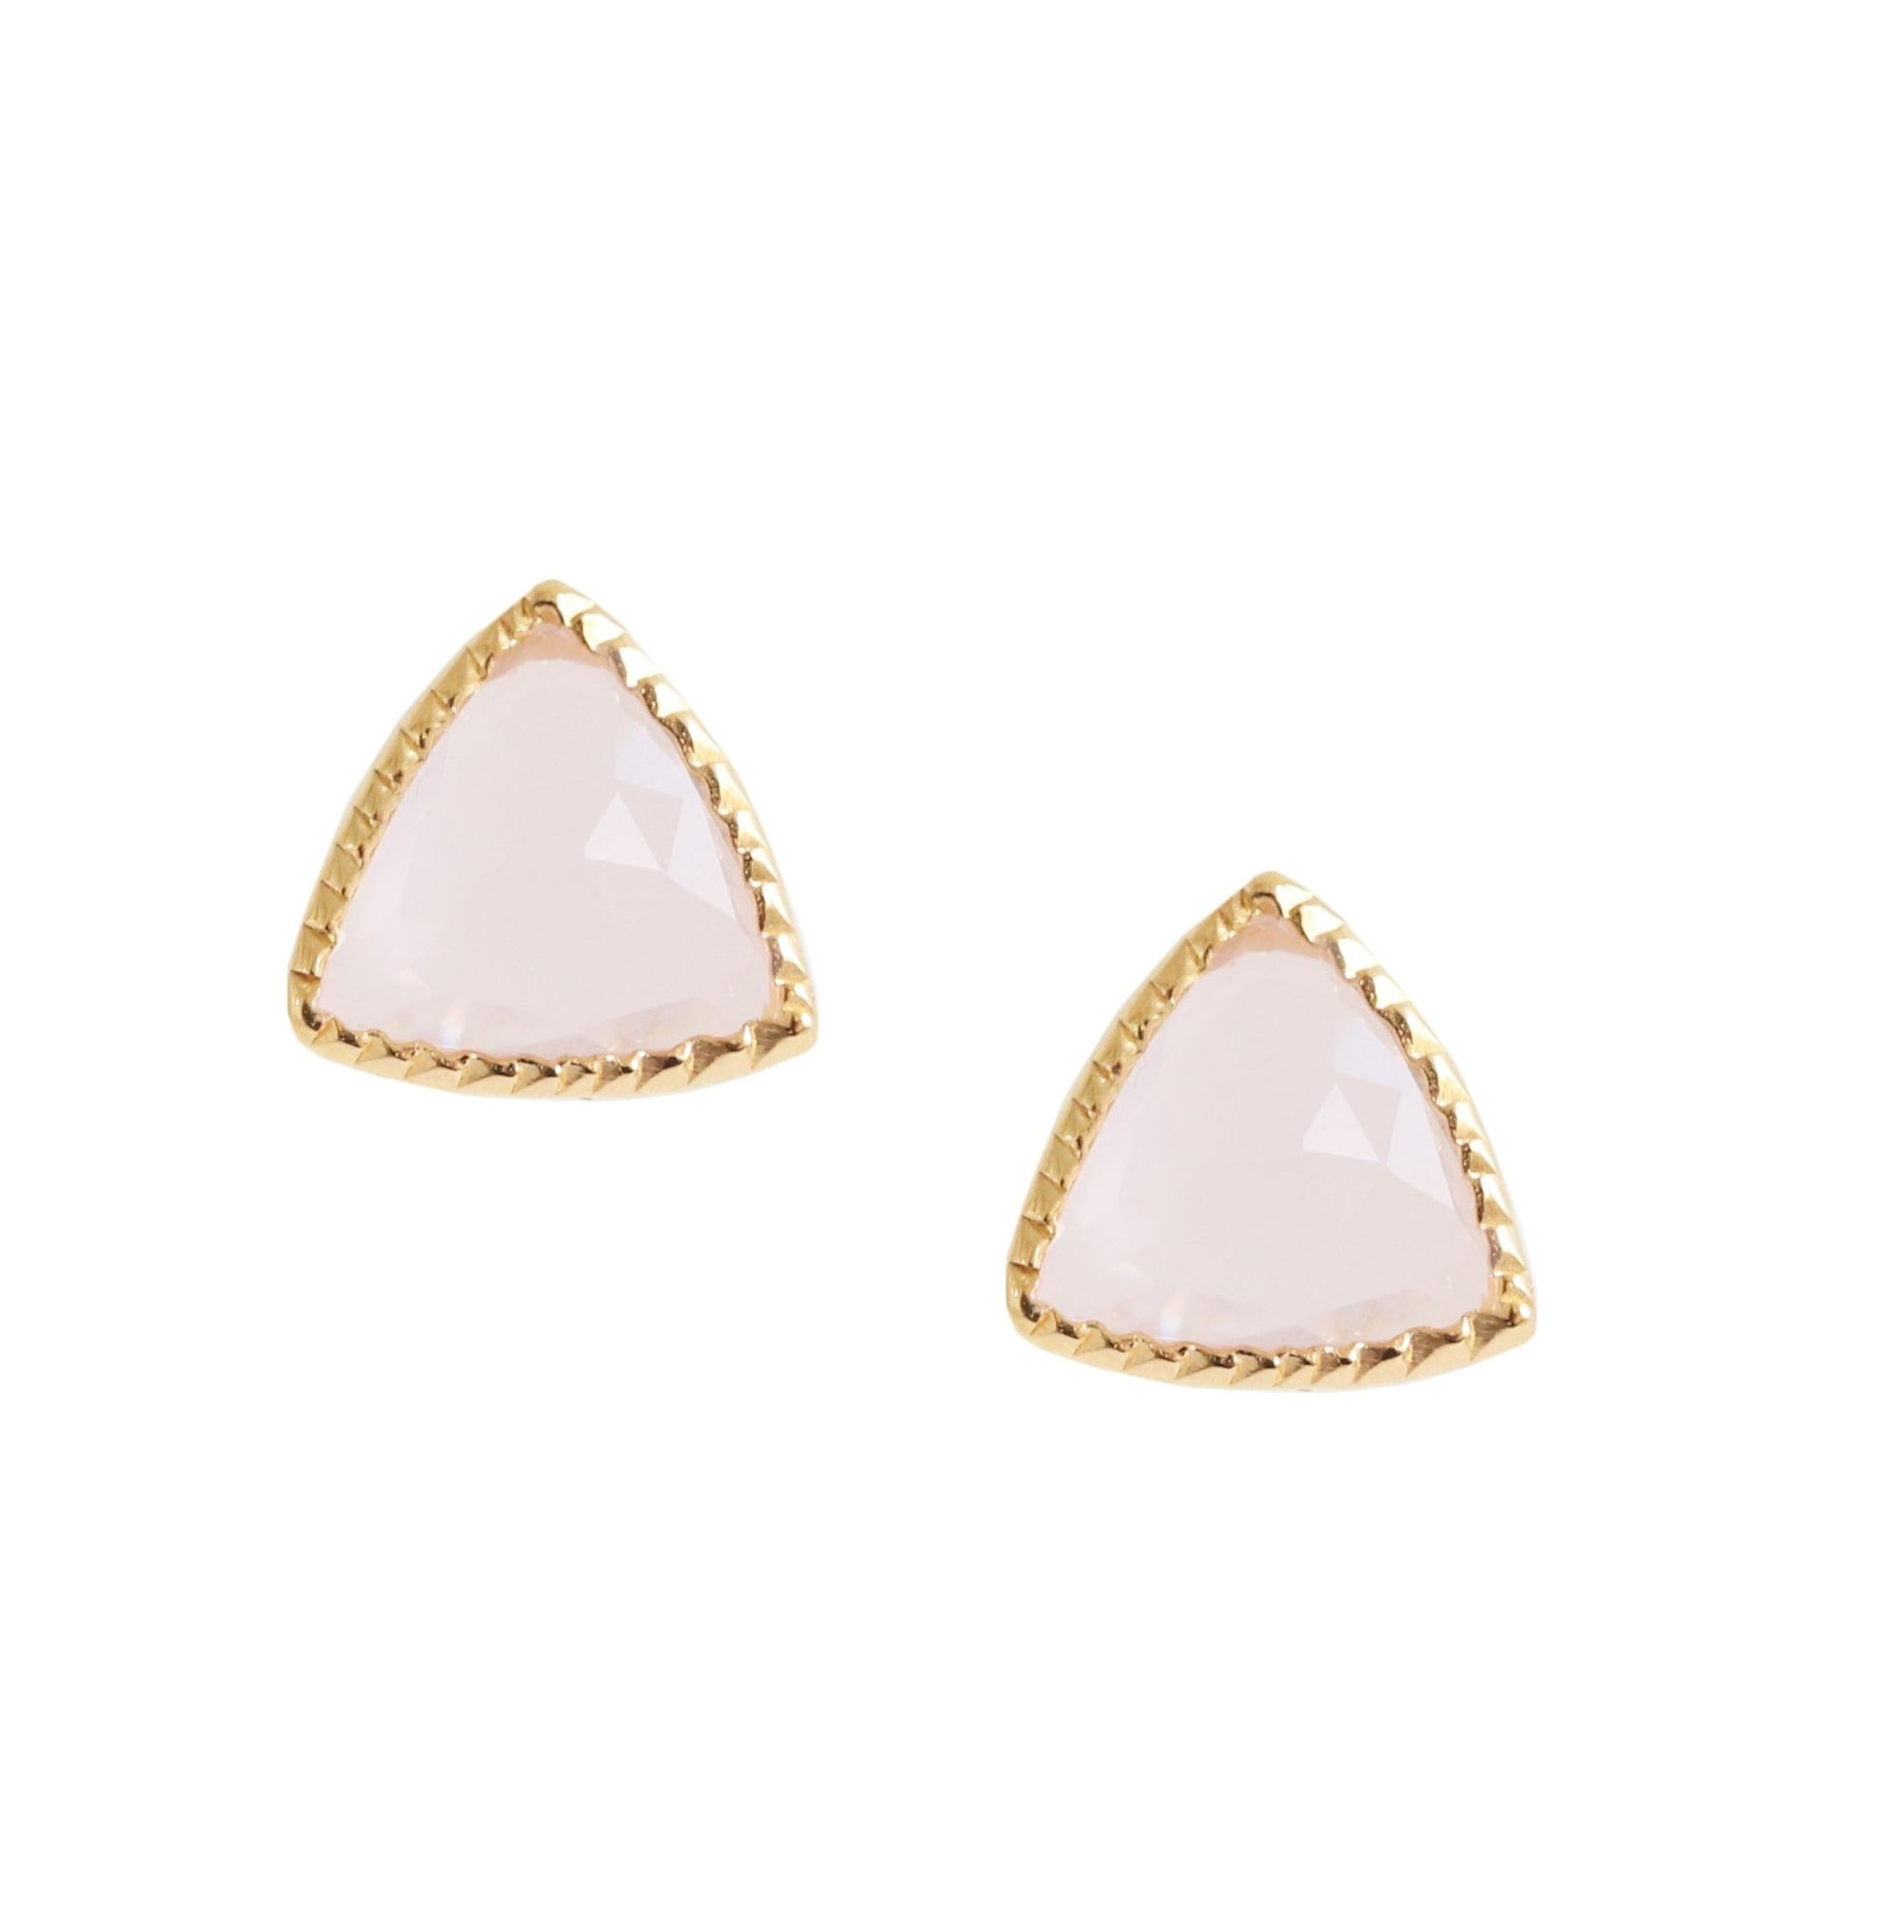 MINI FREEDOM STUD EARRINGS - PINK QUARTZ & GOLD - SO PRETTY CARA COTTER